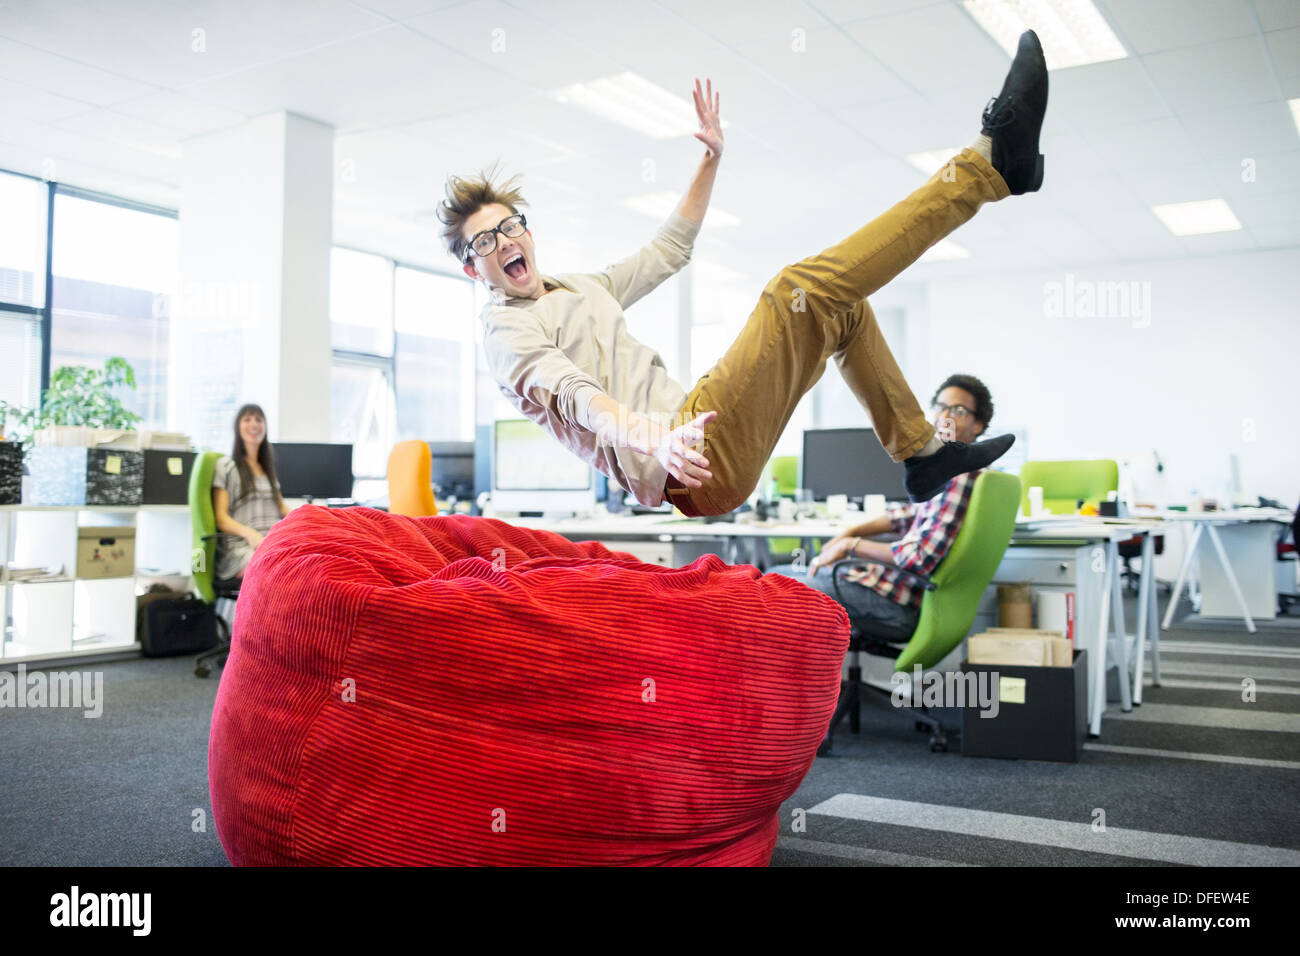 Businessman jumping into beanbag chair in office - Stock Image